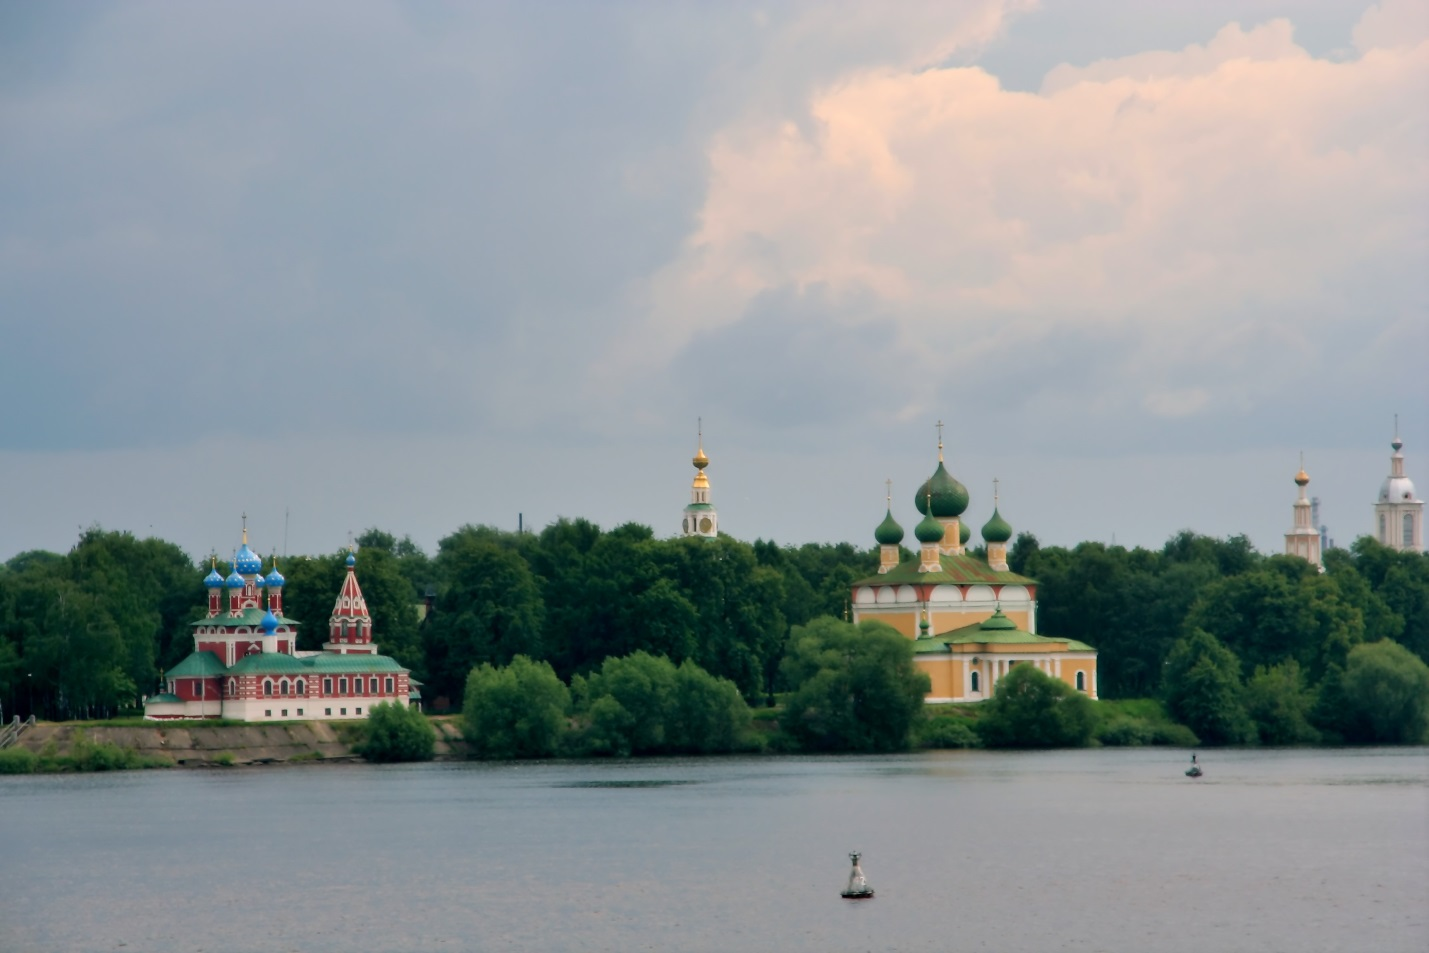 http://dic.academic.ru/pictures/wiki/files/85/Uglich_Dimitrij_church_and_cathedral_from_riverside.jpg